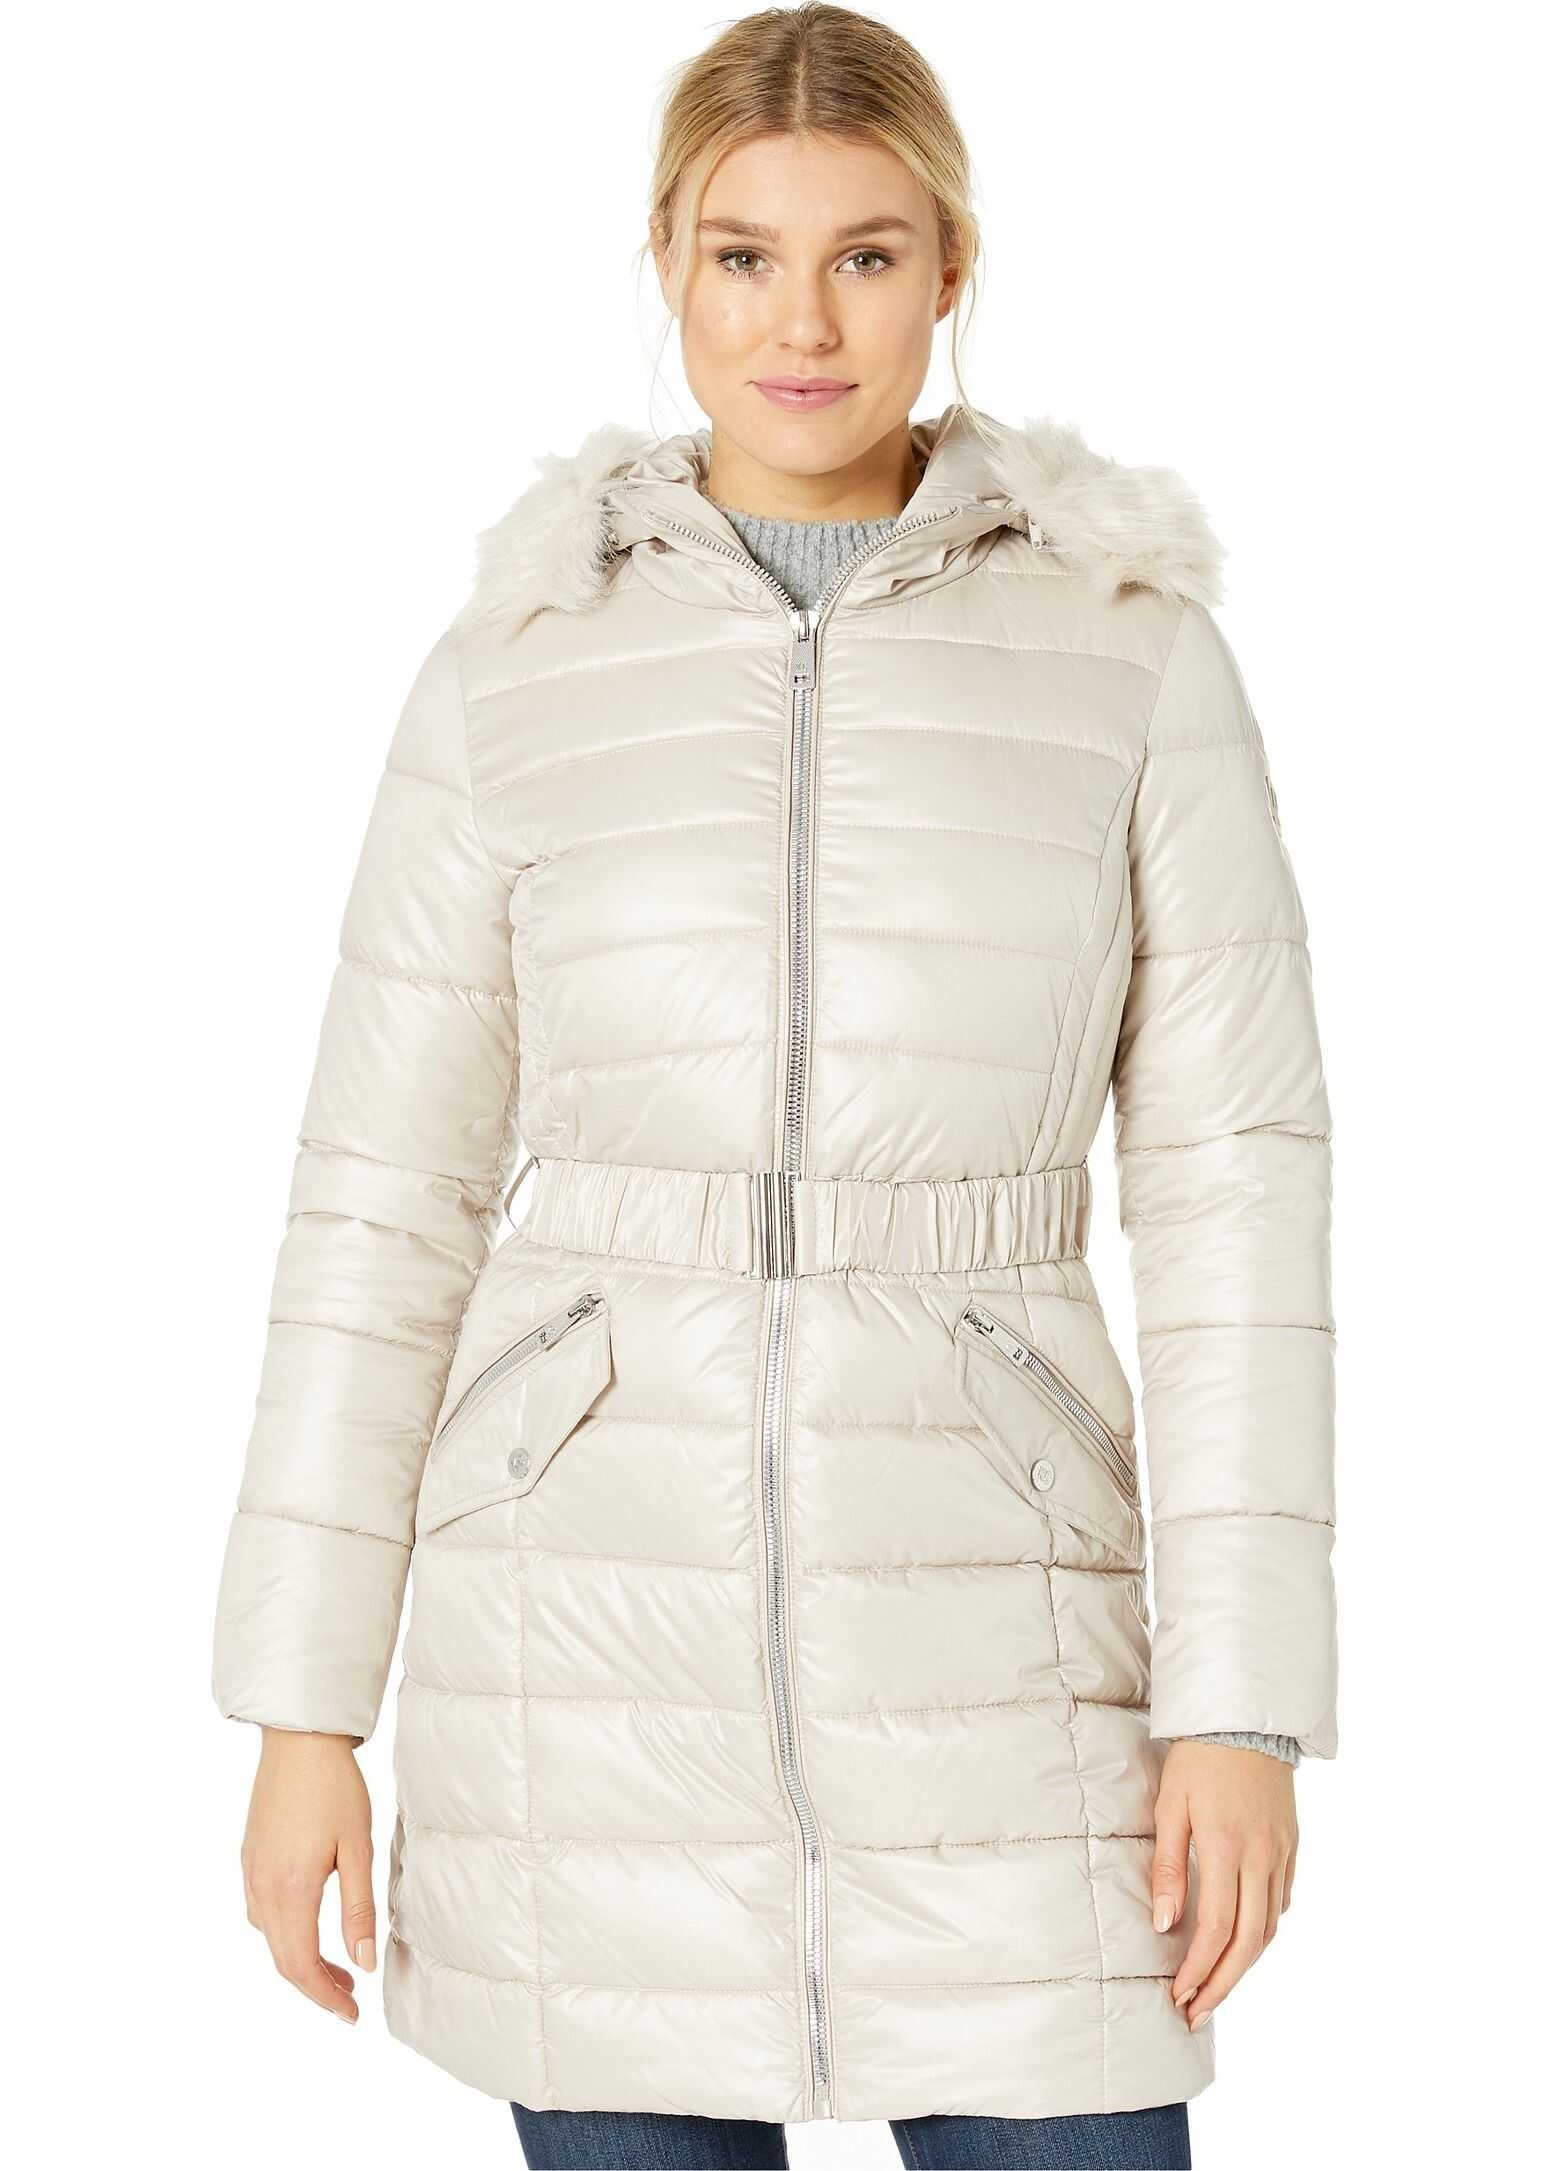 Kenneth Cole New York Belted Lightweight Puffer w/ Welt Pockets & Faux Fur Trimmed Hood Bone